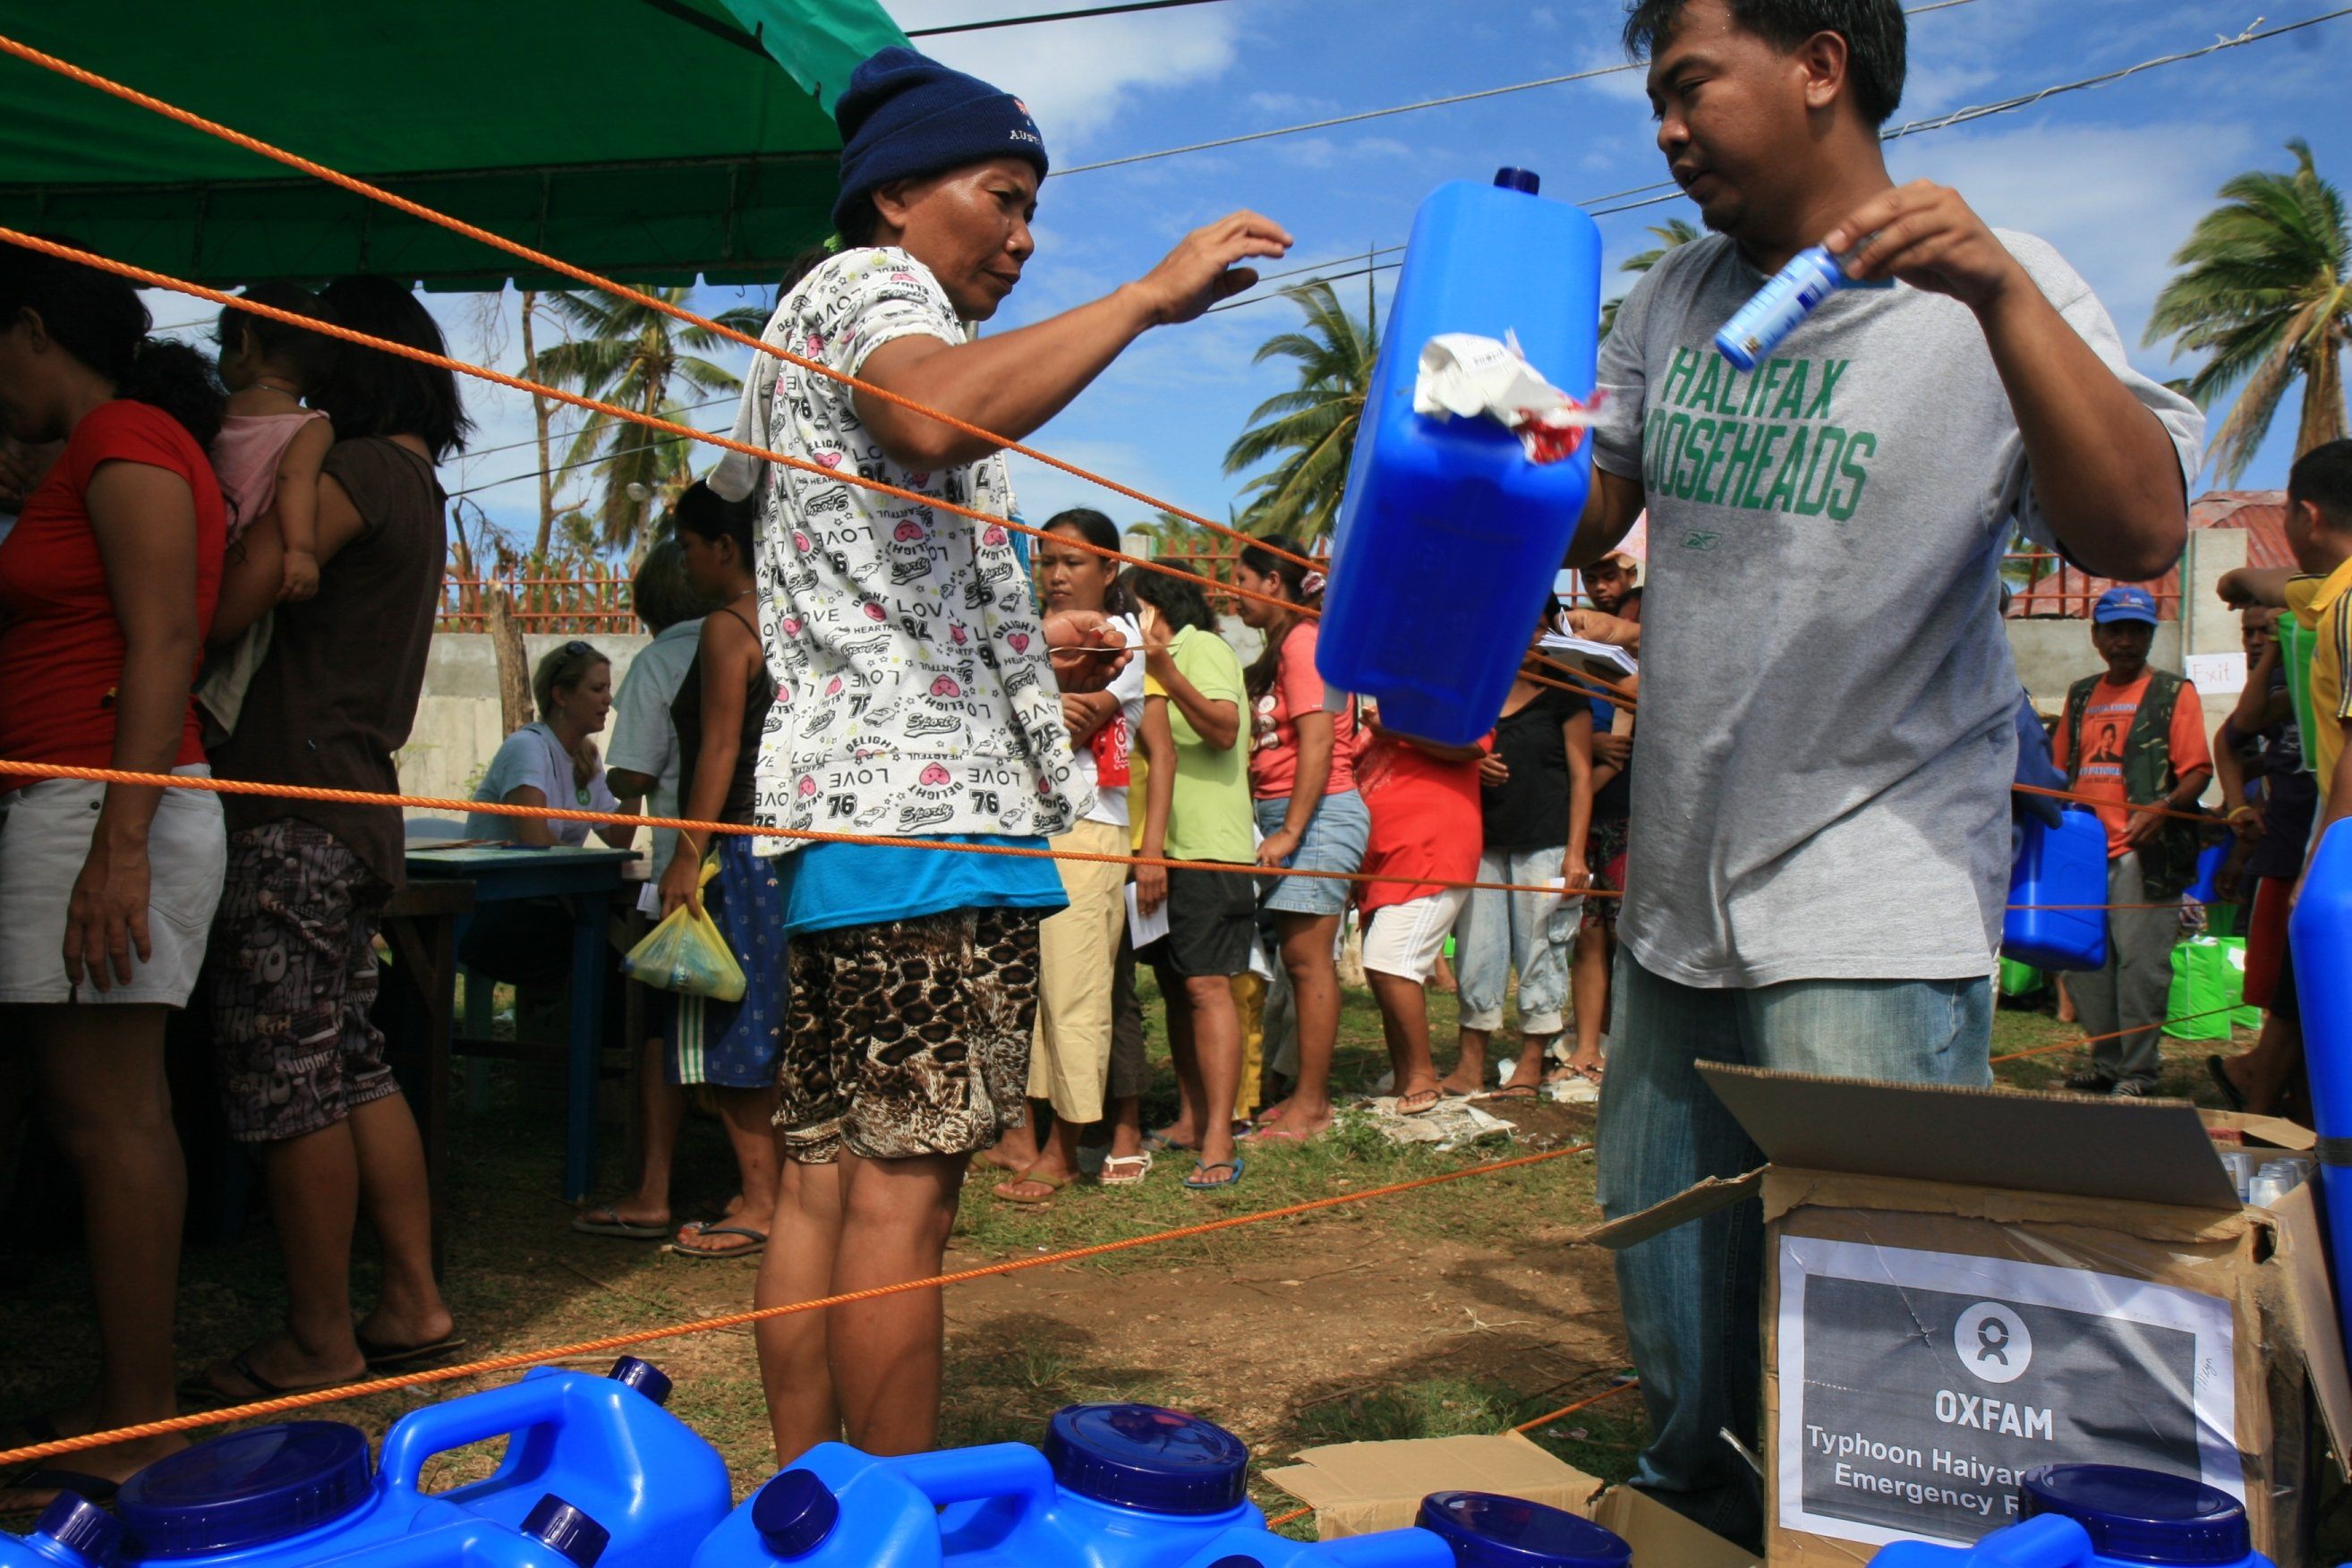 Oxfam's hygiene and water purification kits were distributed to over 700 families in the coastal region of Daanbantayan over two days.